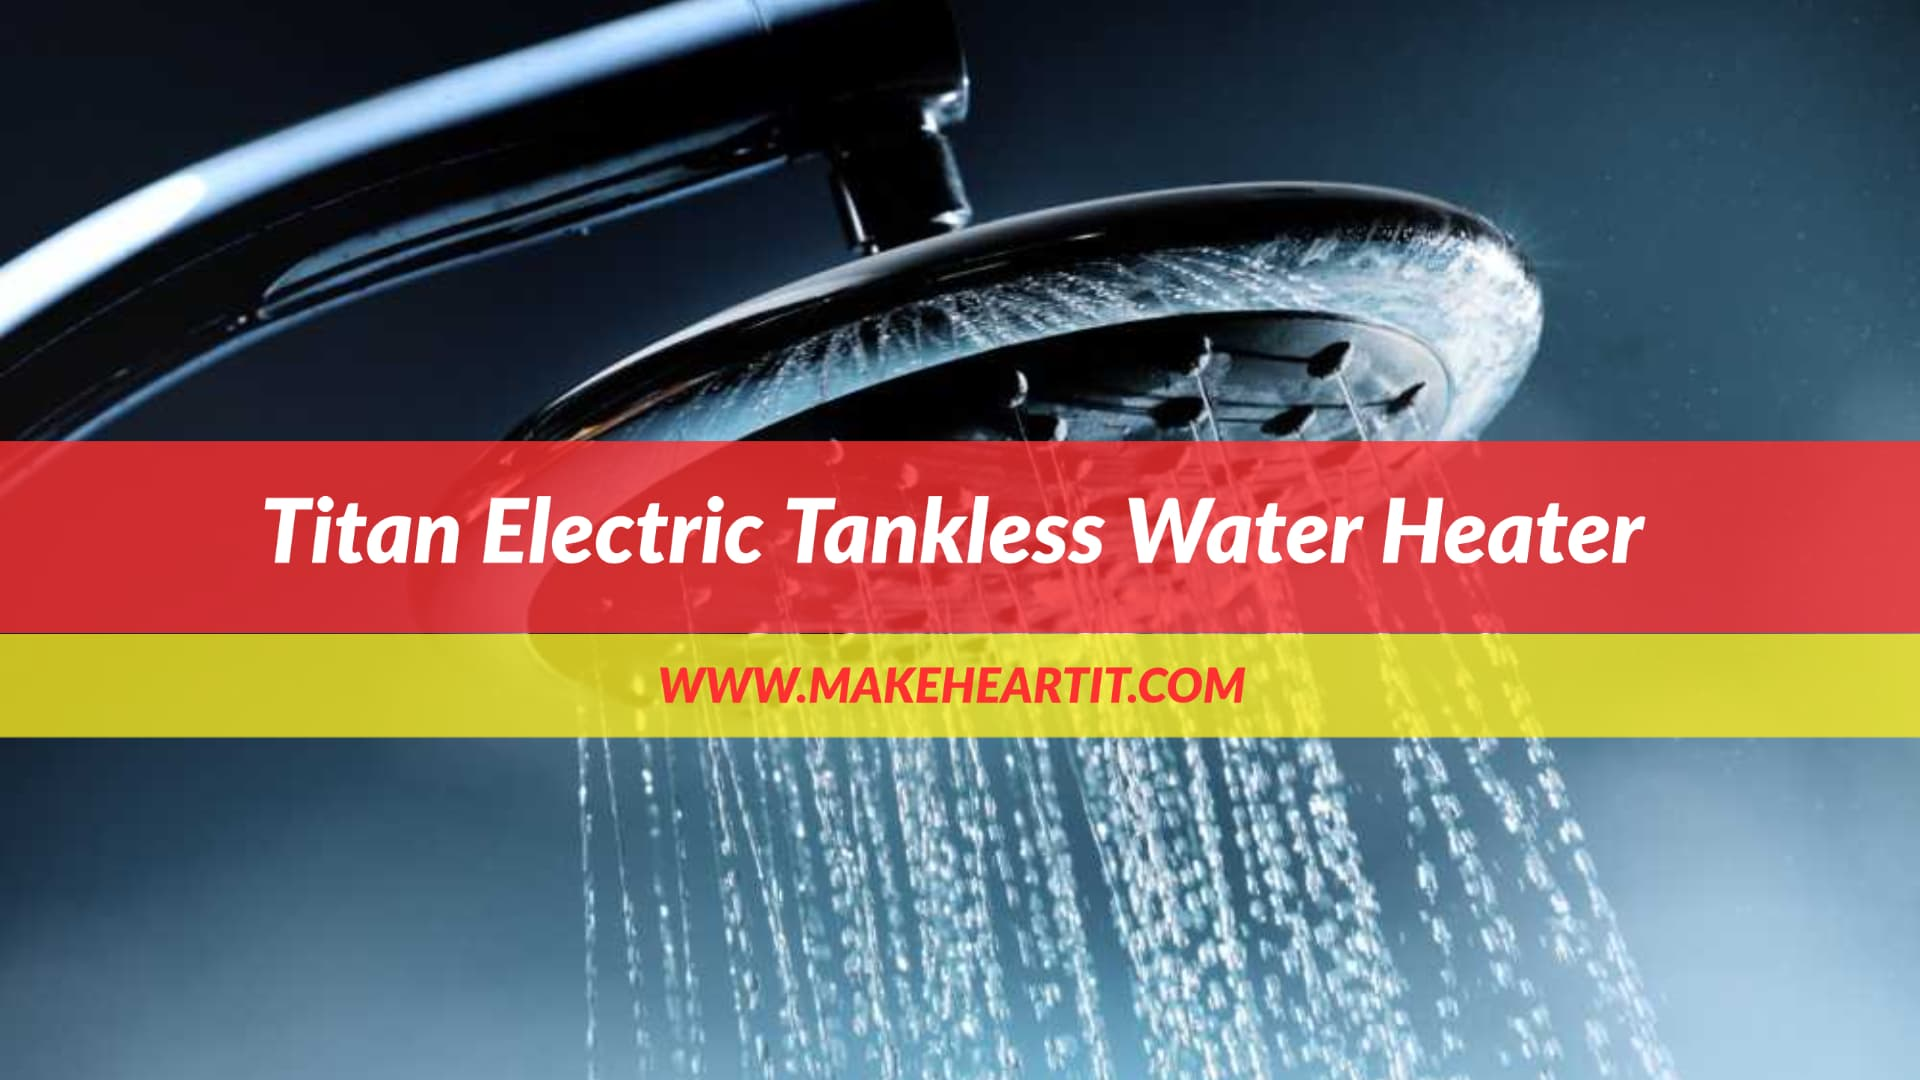 best electric tankless water heater for rv, Electric Tankless Water Heater, electric tankless water heater installation, how to install an electric tankless water heater, tankless electric water heater, Tankless Water Heater, tankless water heater electric, Titan, Titan Electric Tankless Water Heater, Titan tankless water heater, Titan tankless water heater manual, Titan water Heater, Top 10 Best titan Electric Tankless Water Heater Reviews